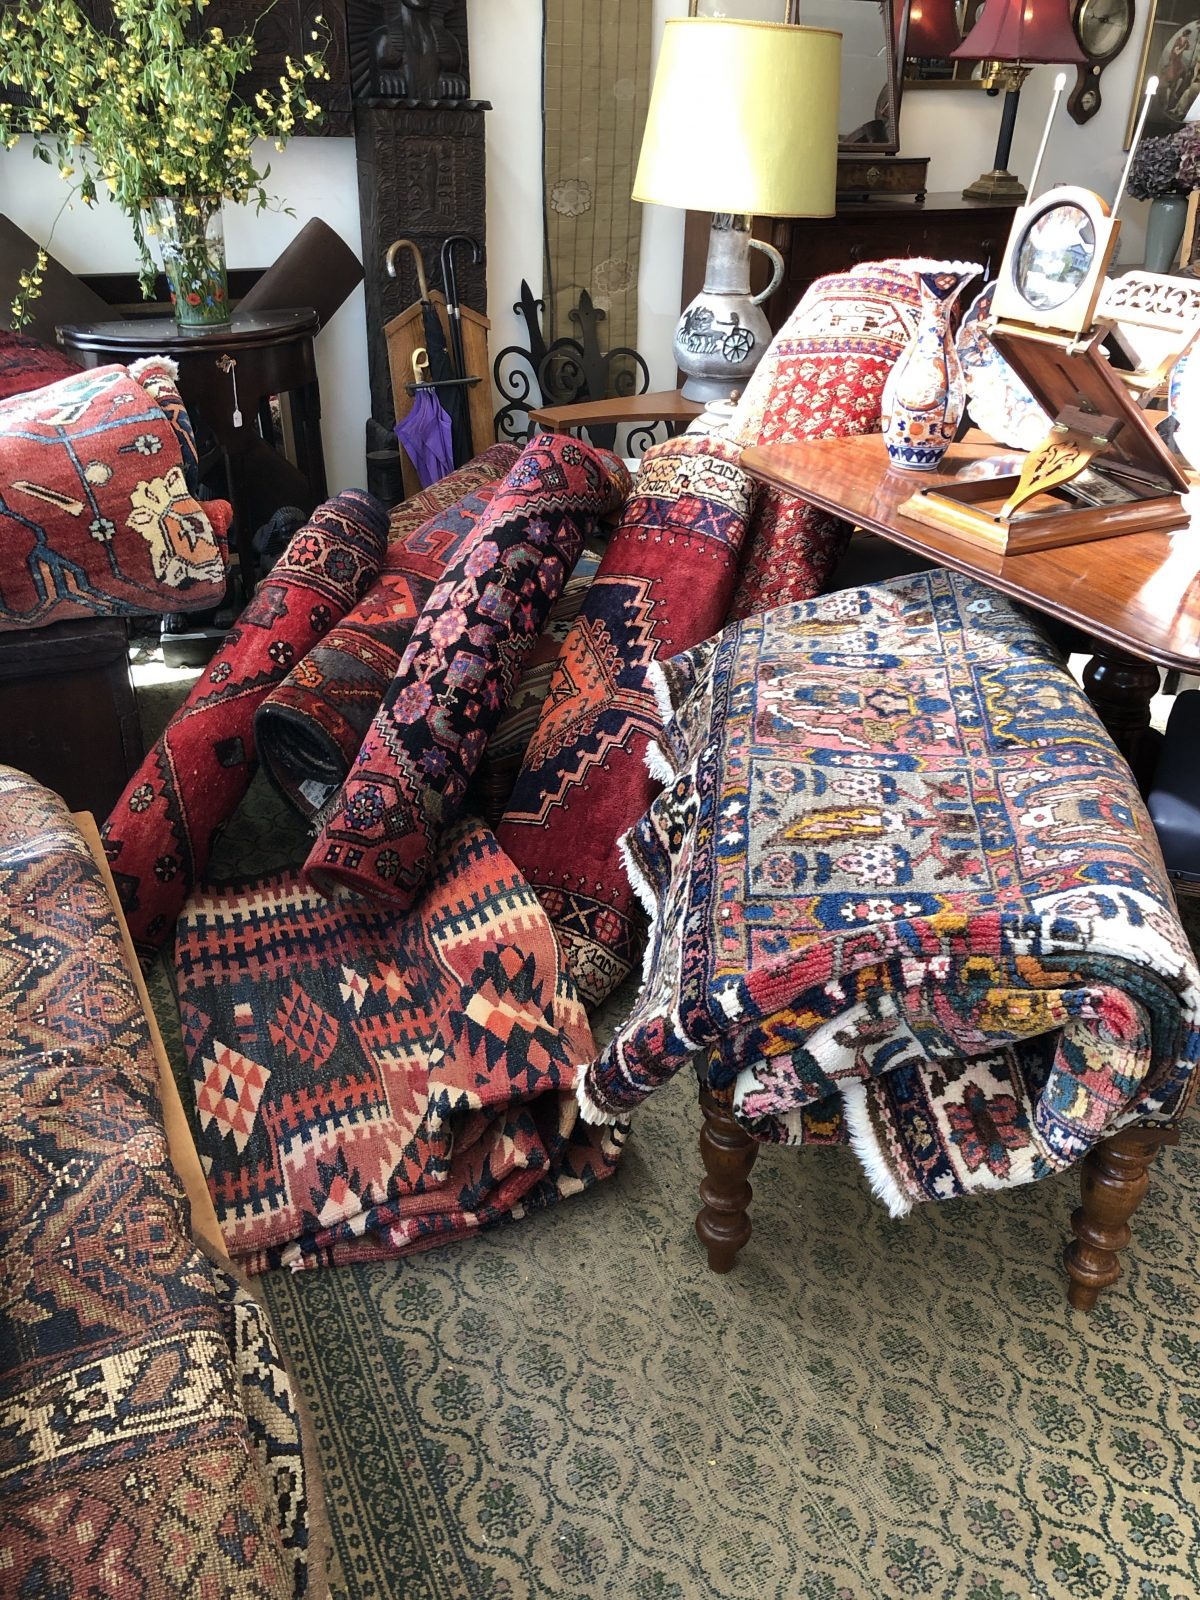 178. Hand Knotted Rugs